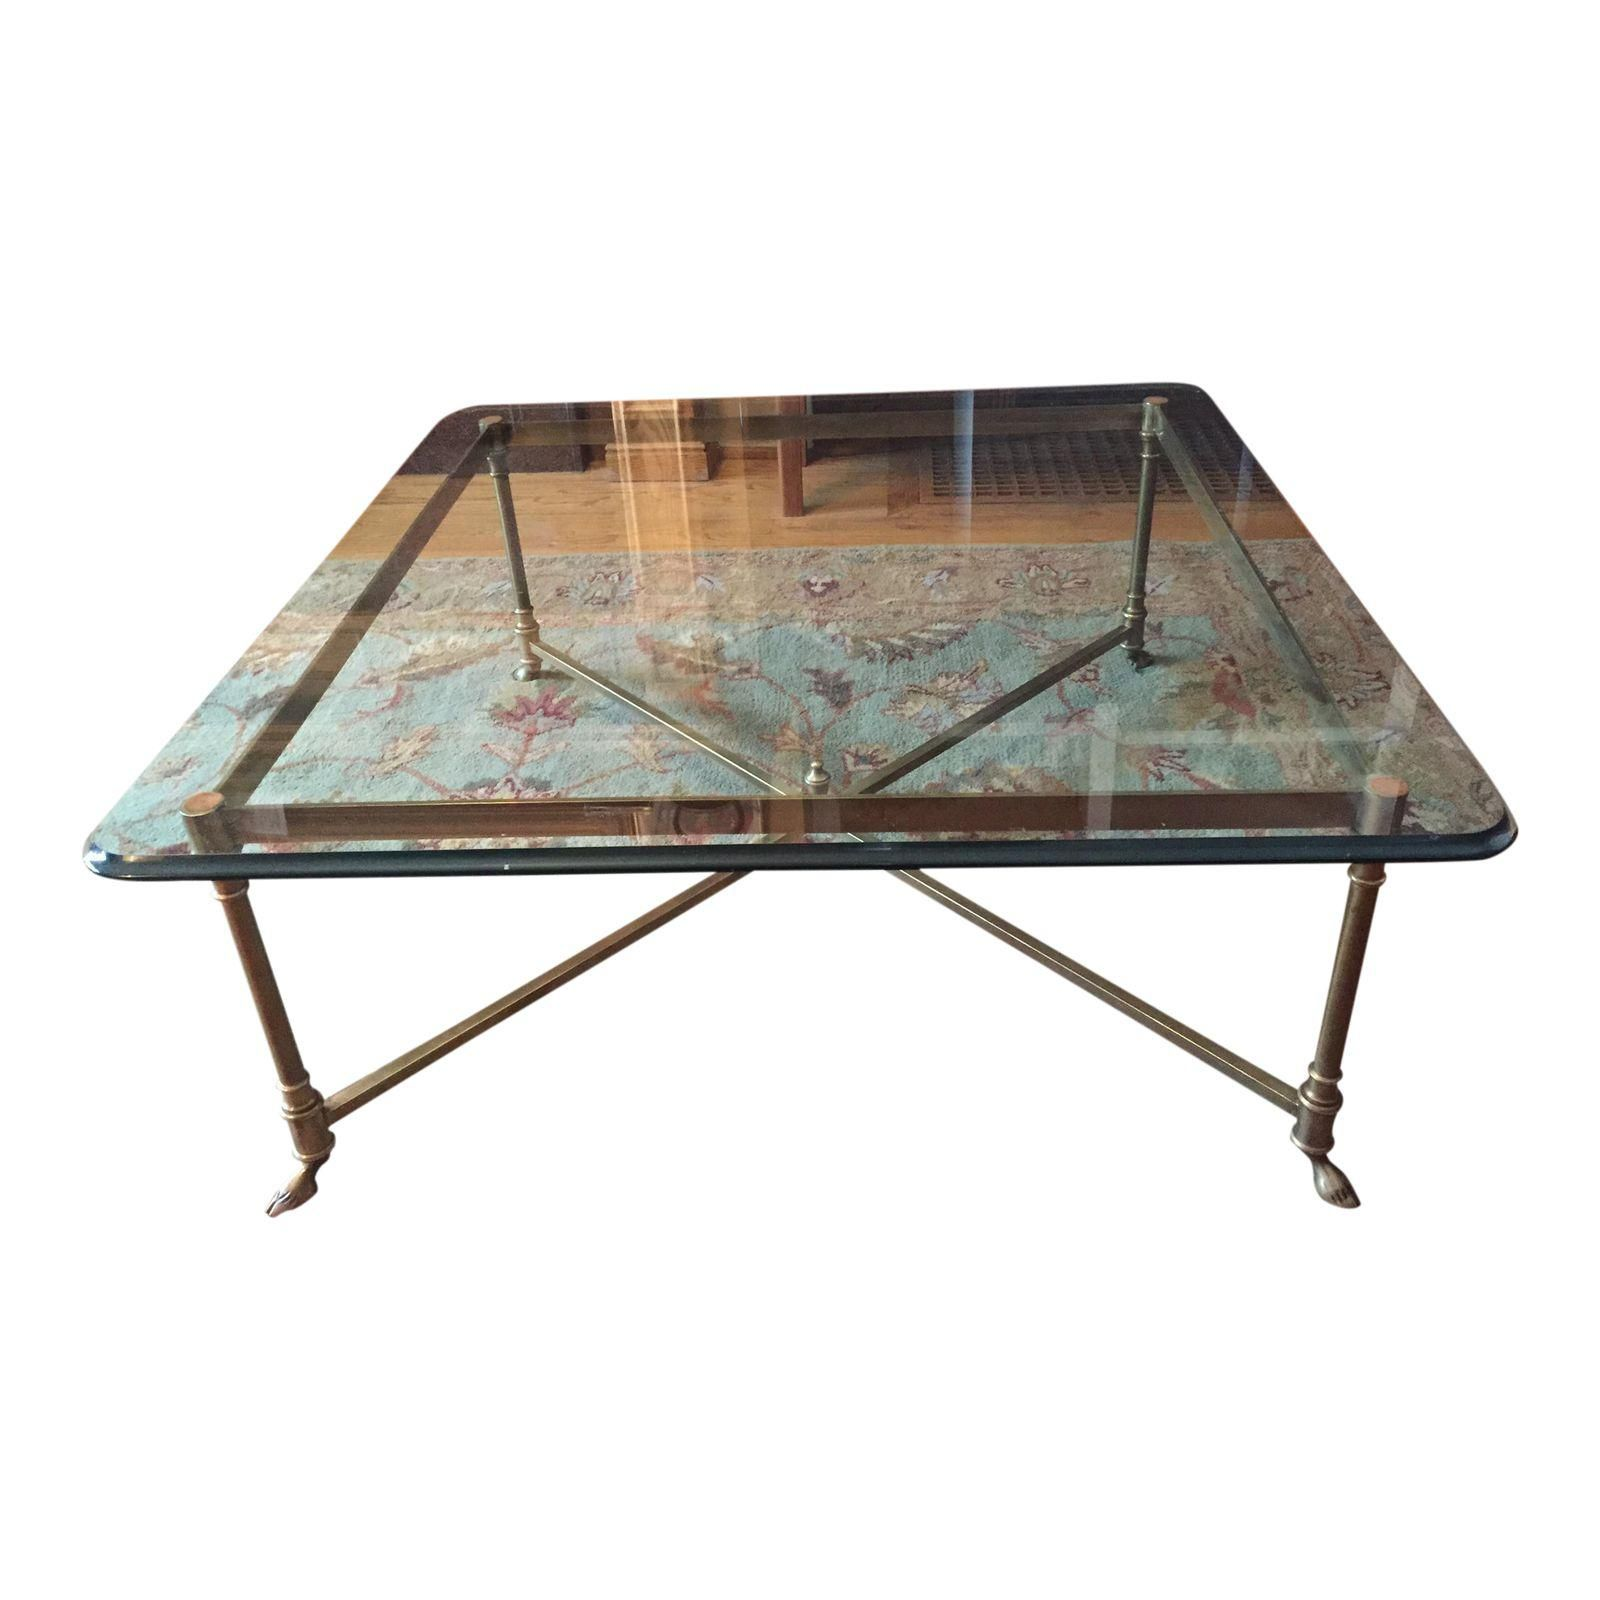 Labarge square brass hoof foot cocktail table squares square image of labarge square brass hoof foot cocktail table geotapseo Images